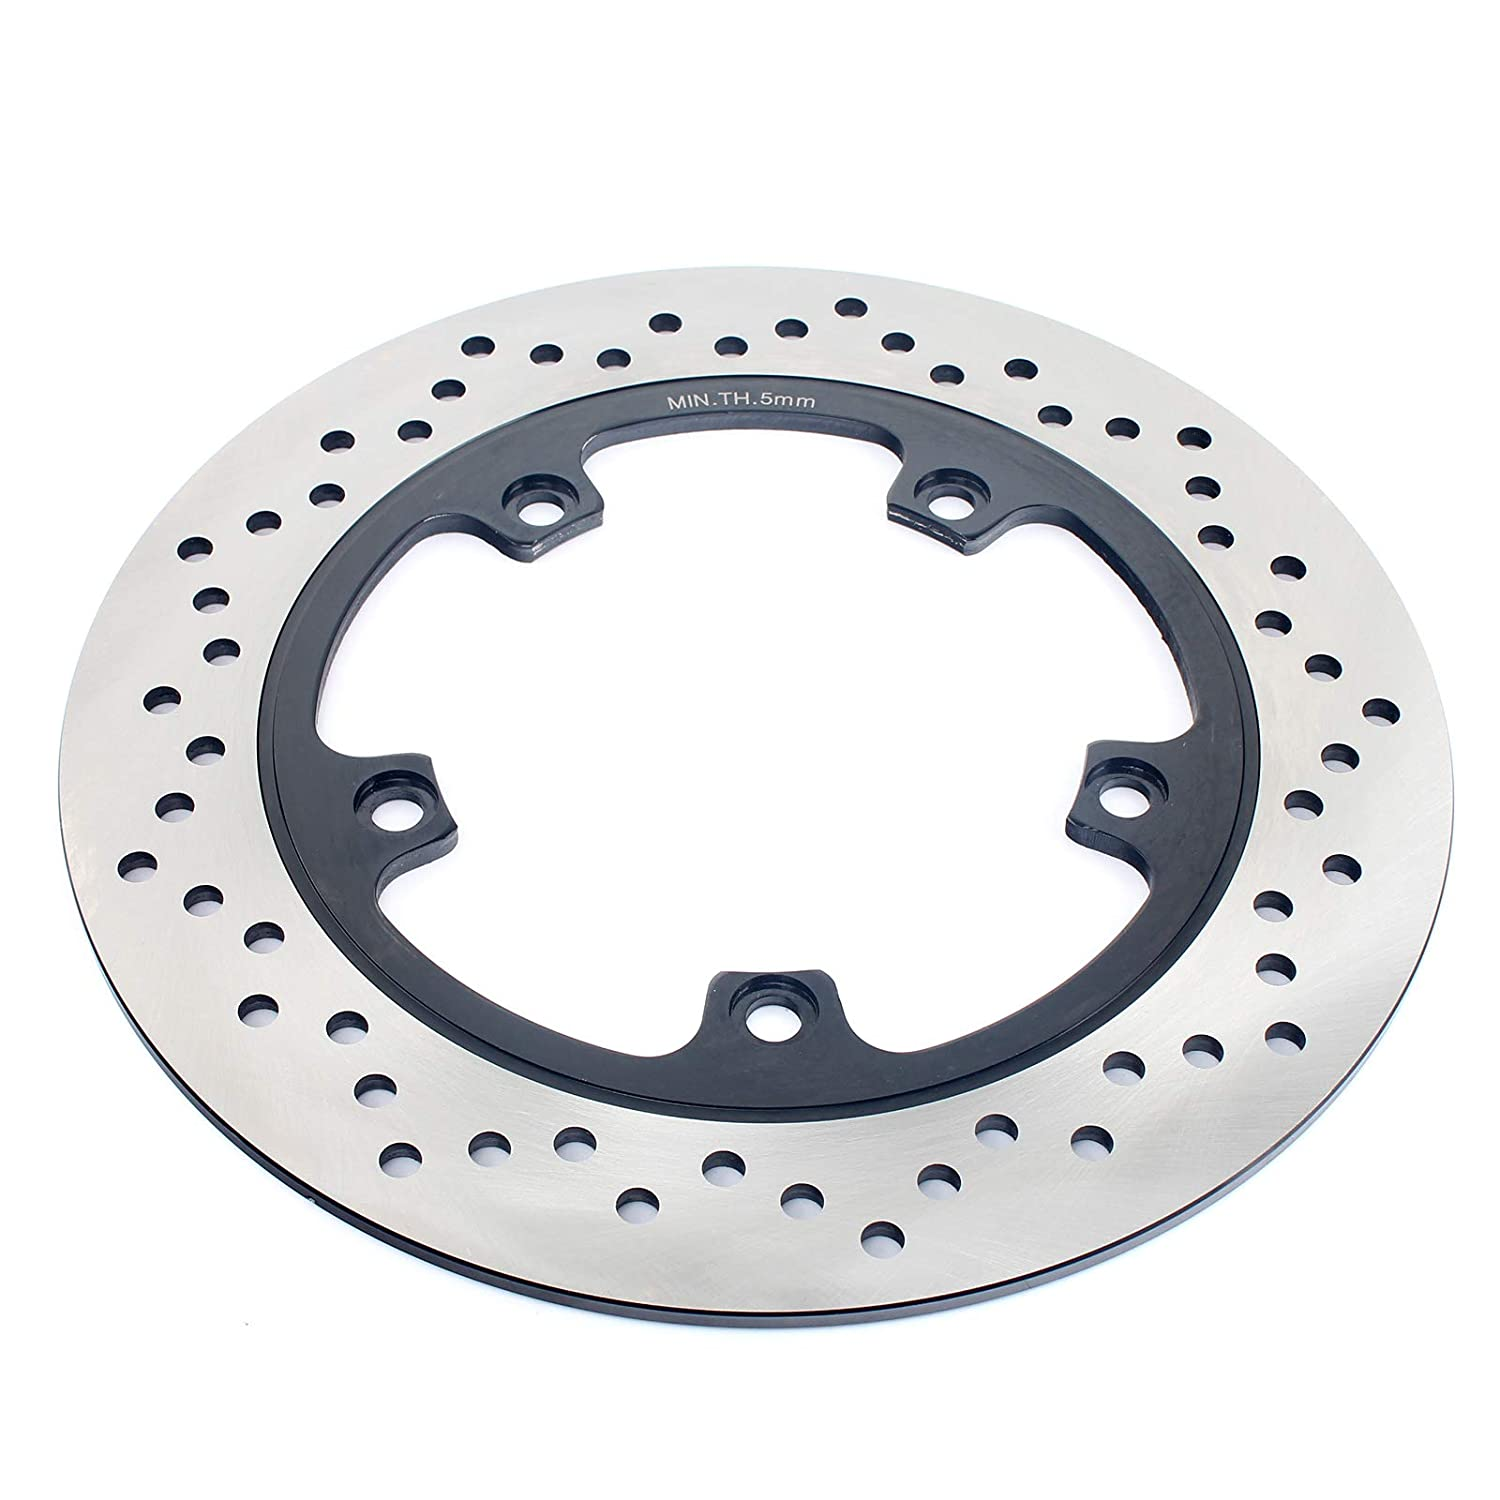 TARAZON Rear Brake Rotor Disc for Triumph Tiger 955 2004 2005 2006 2007